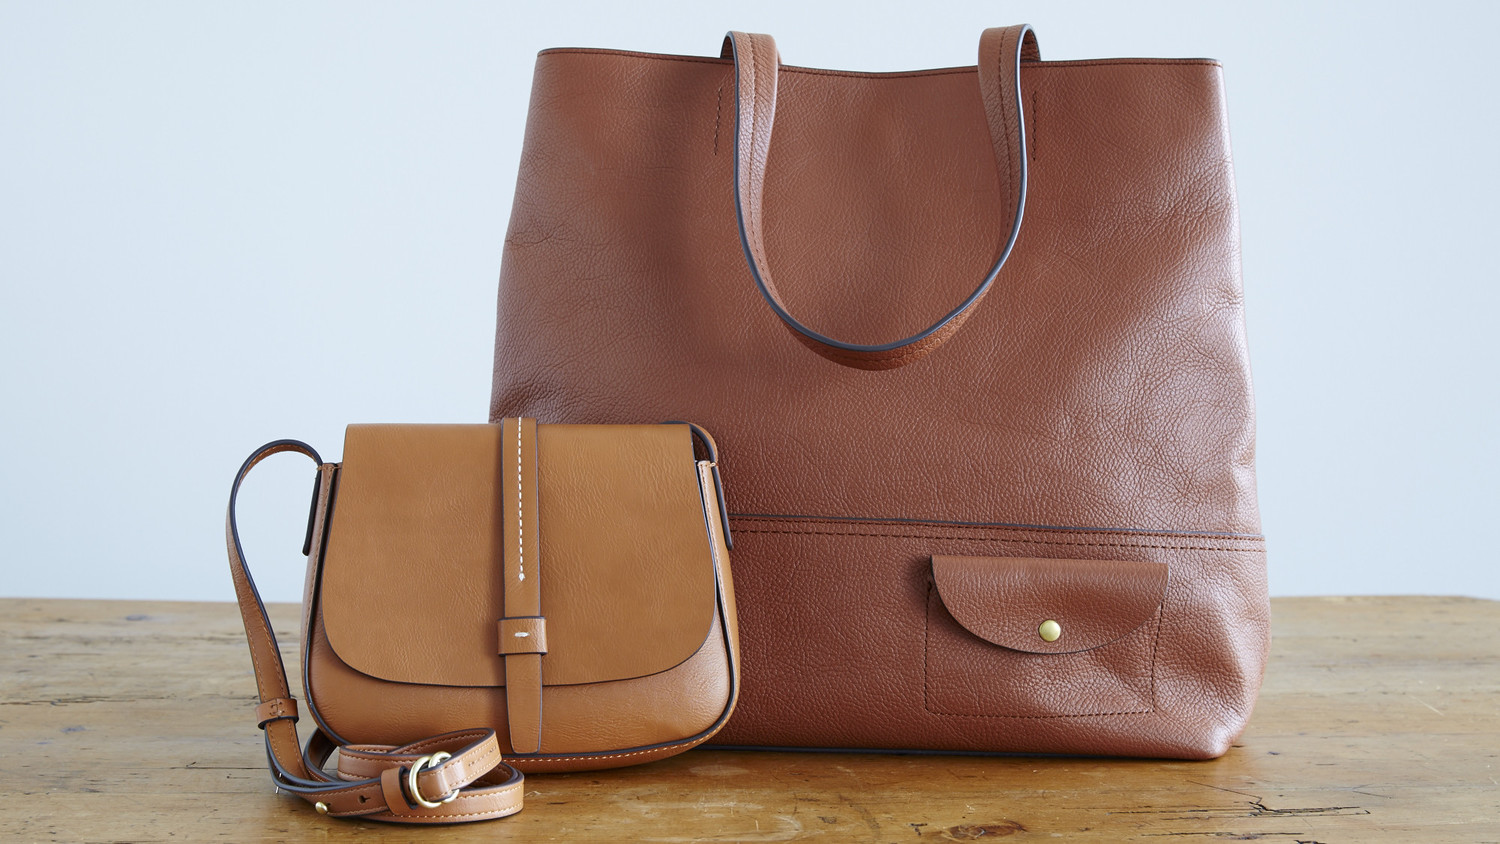 d78c1b9dca0 Expert Ways to Keep Your Handbags Scratch and Stain Free | Martha ...